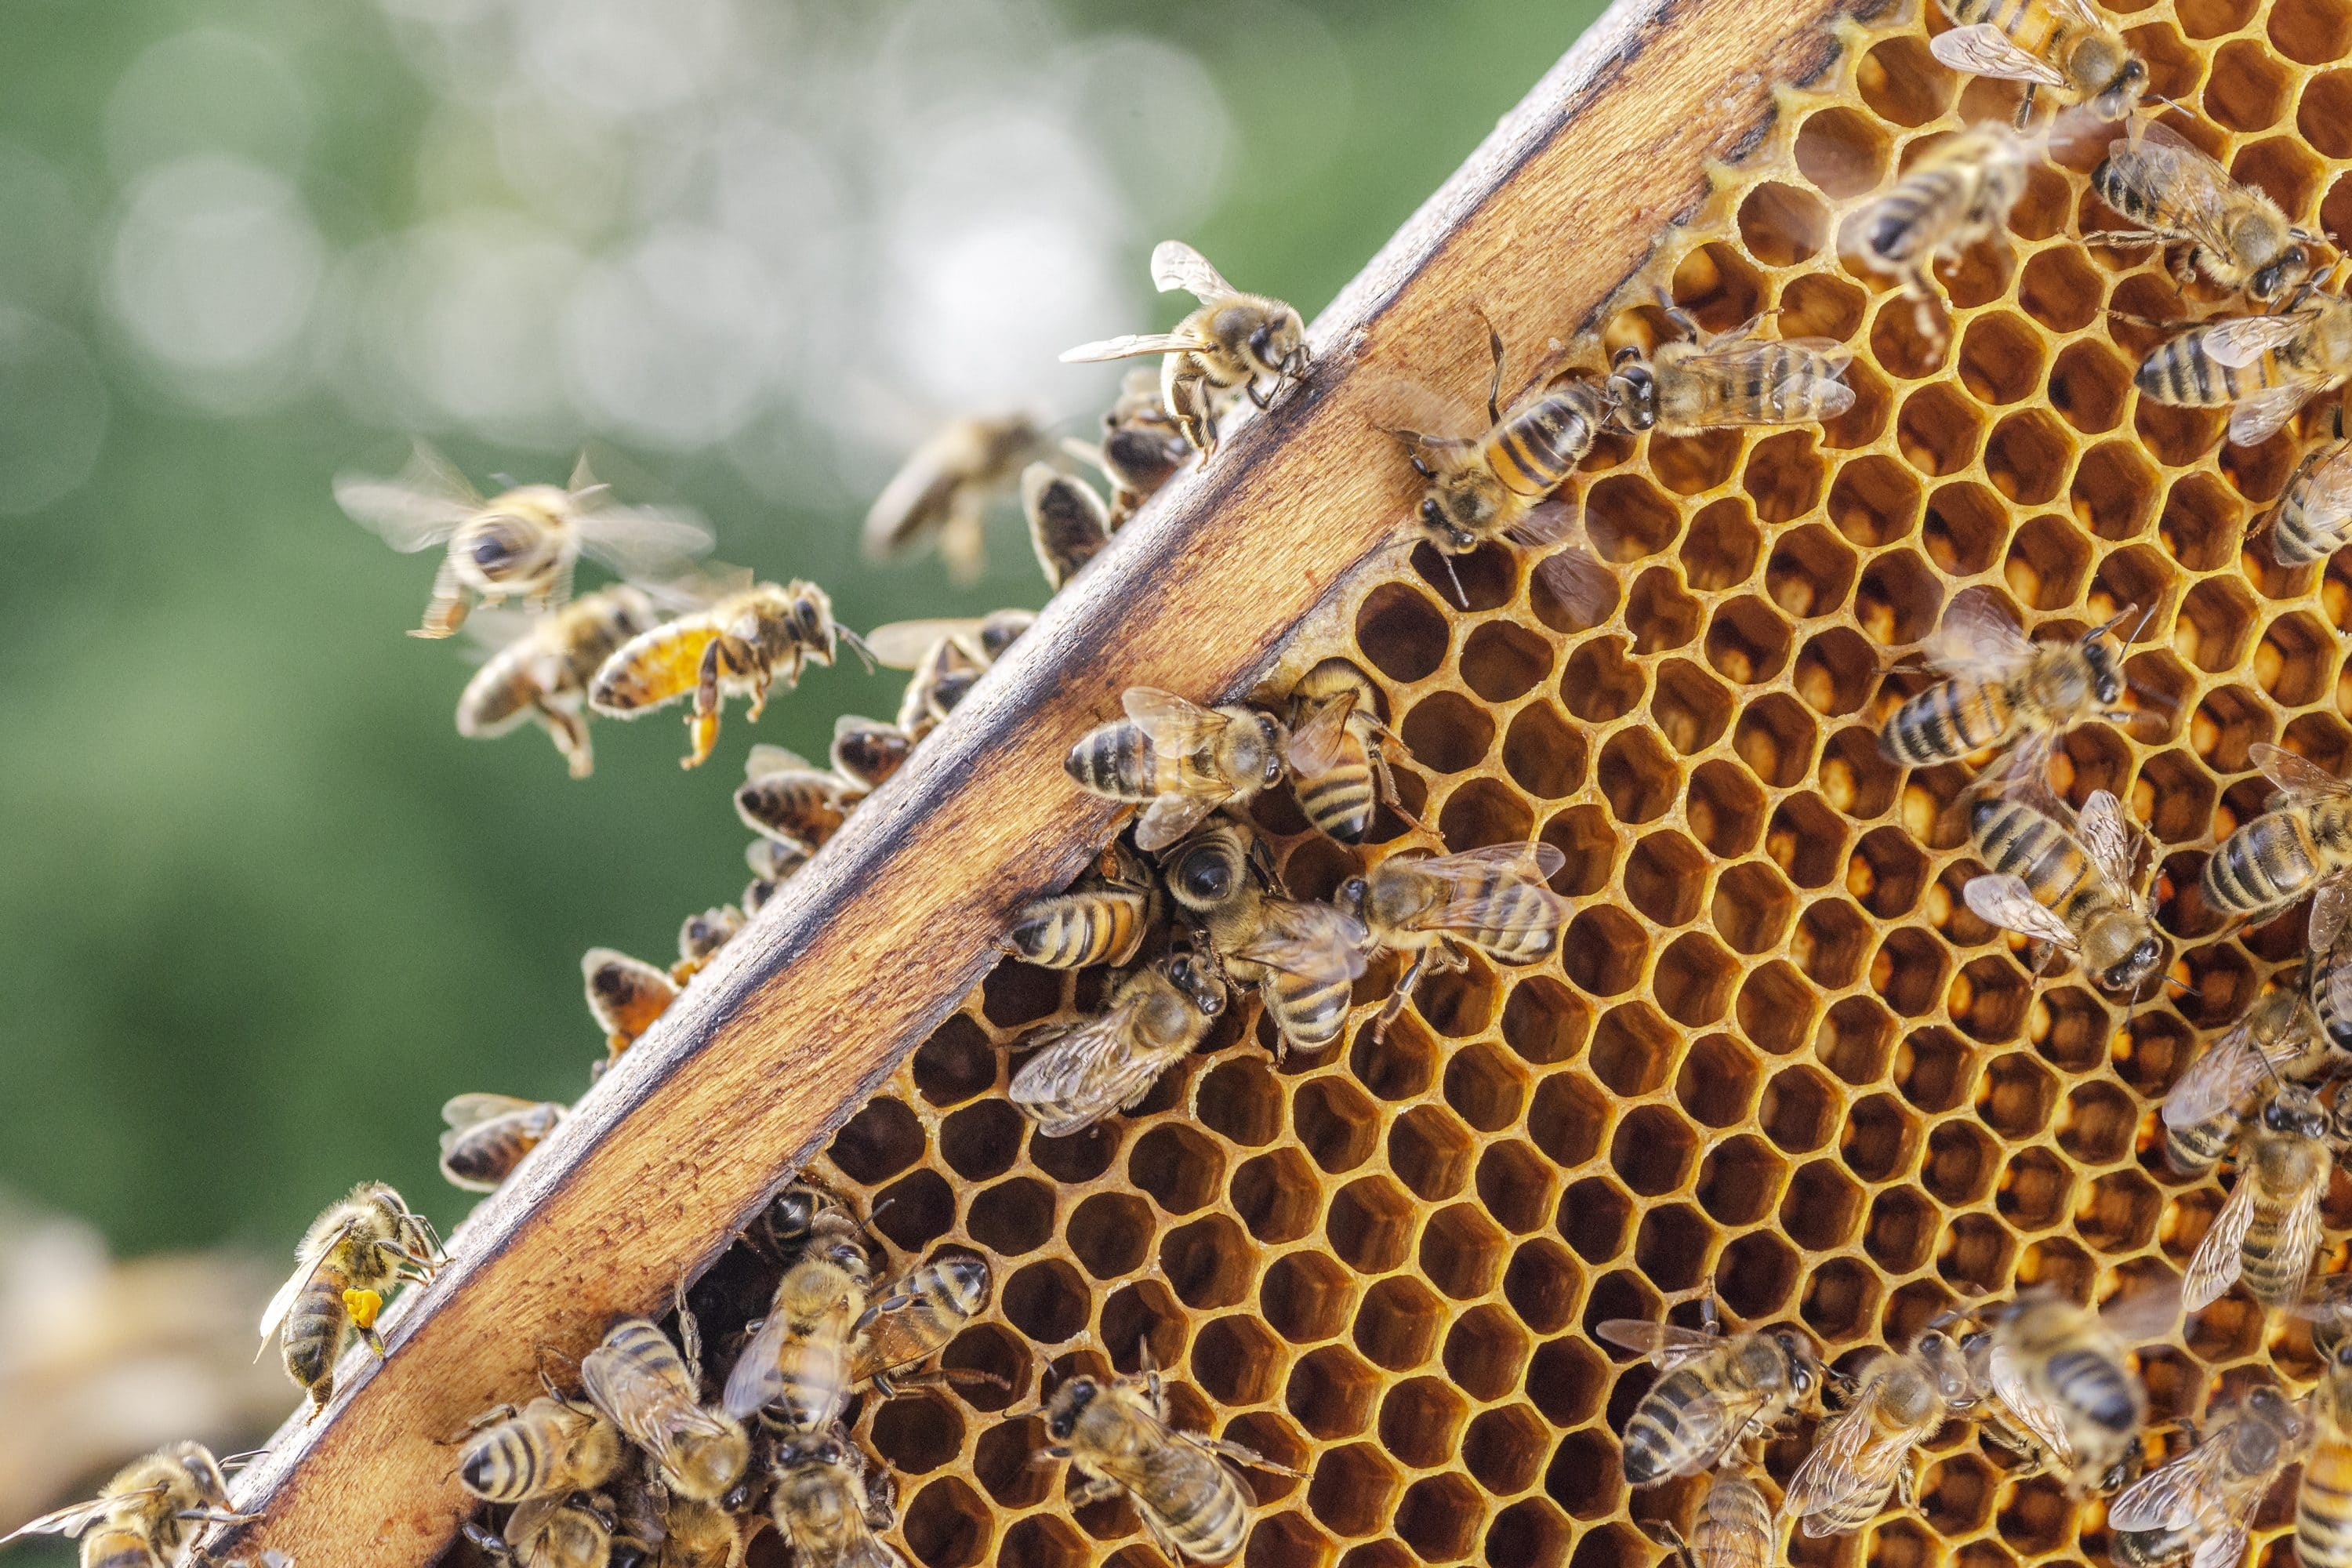 Bees surround an on-site beehive at Mandarin Oriental